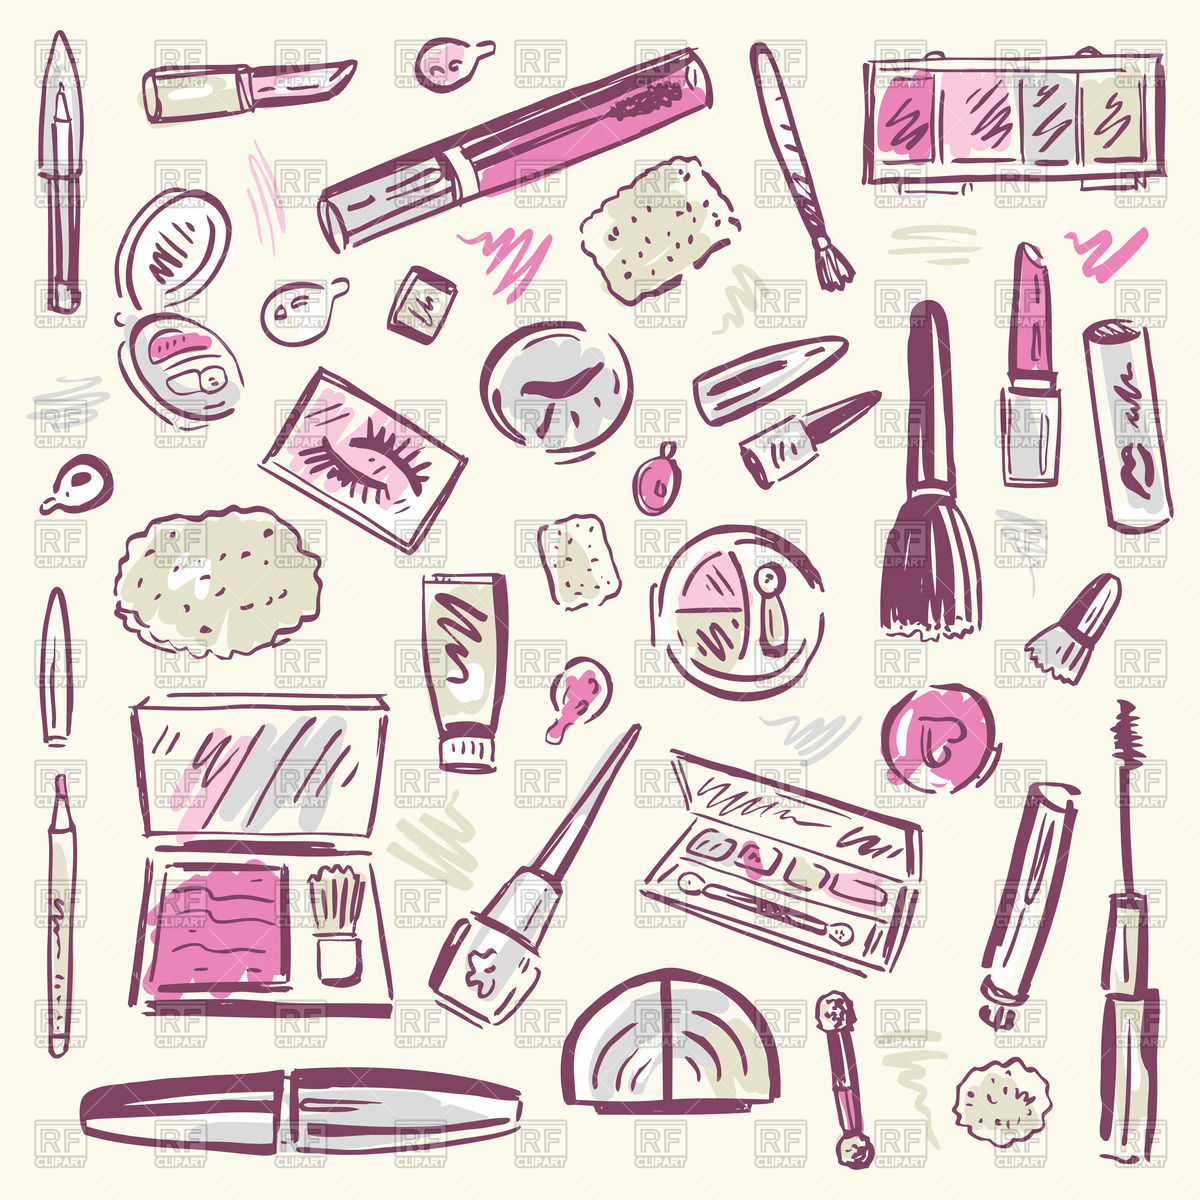 Sketchy set of cosmetic and makeup products Vector Image #45789.